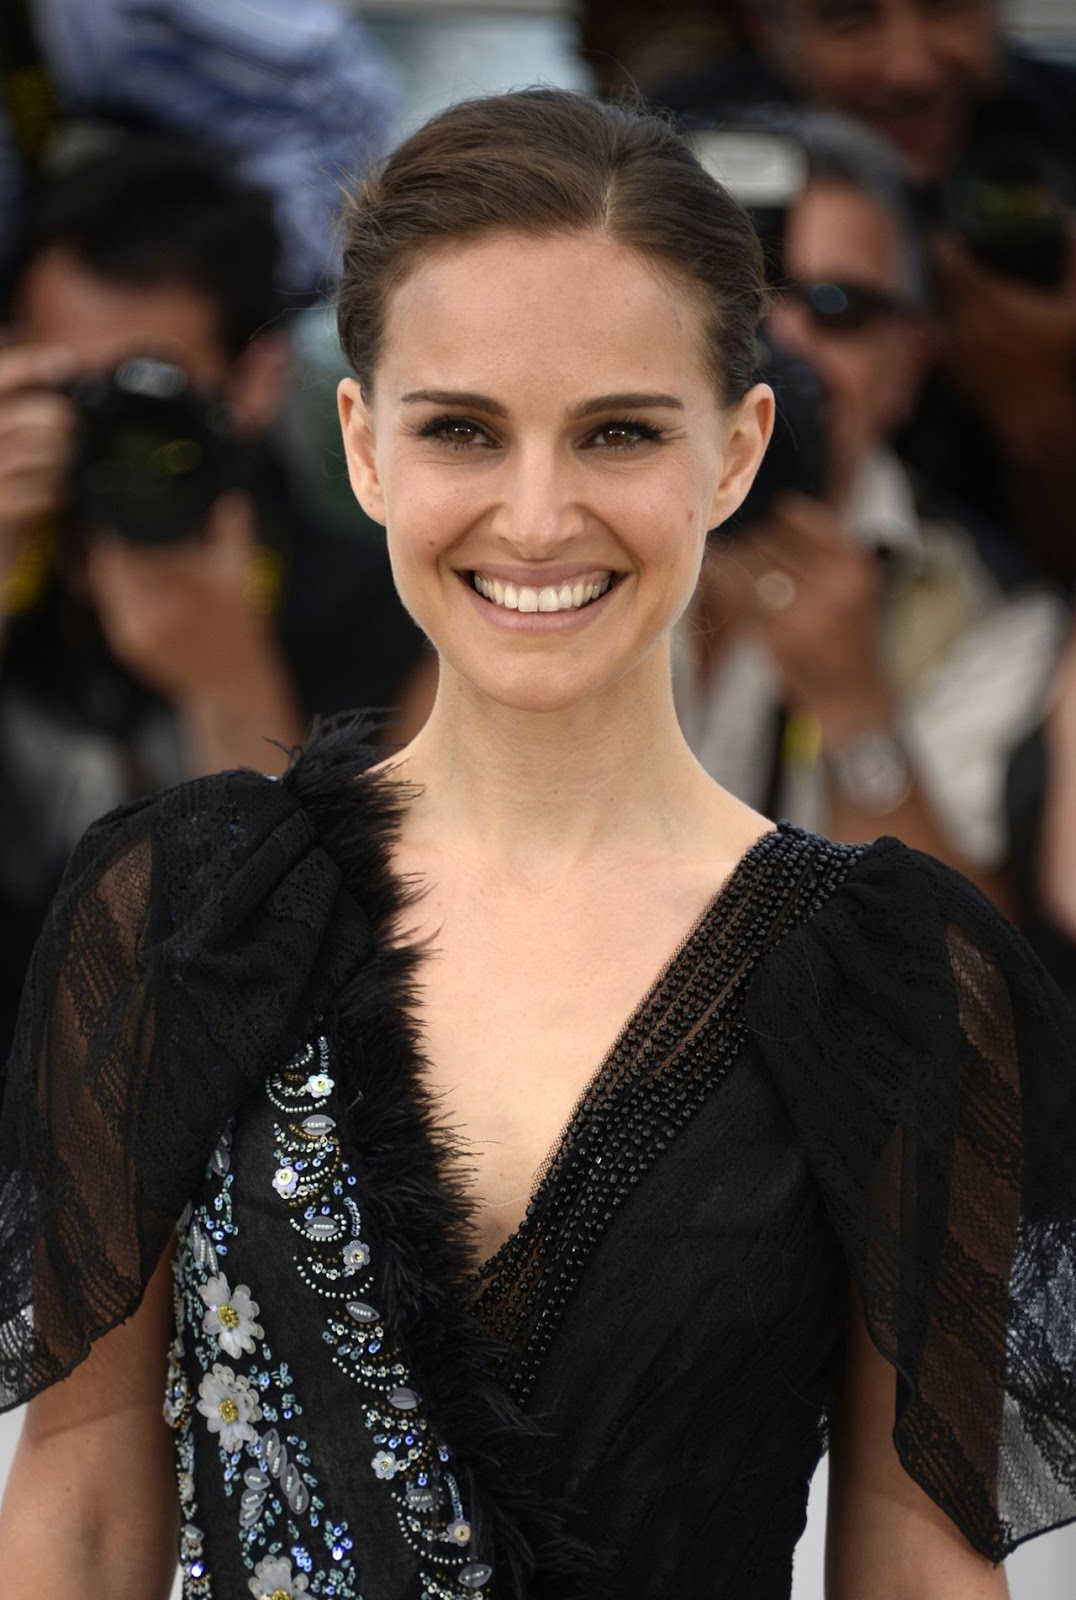 Natalie Portman 'A Tale of Love and Darkness' Photocall at 2015 Cannes Film Festival